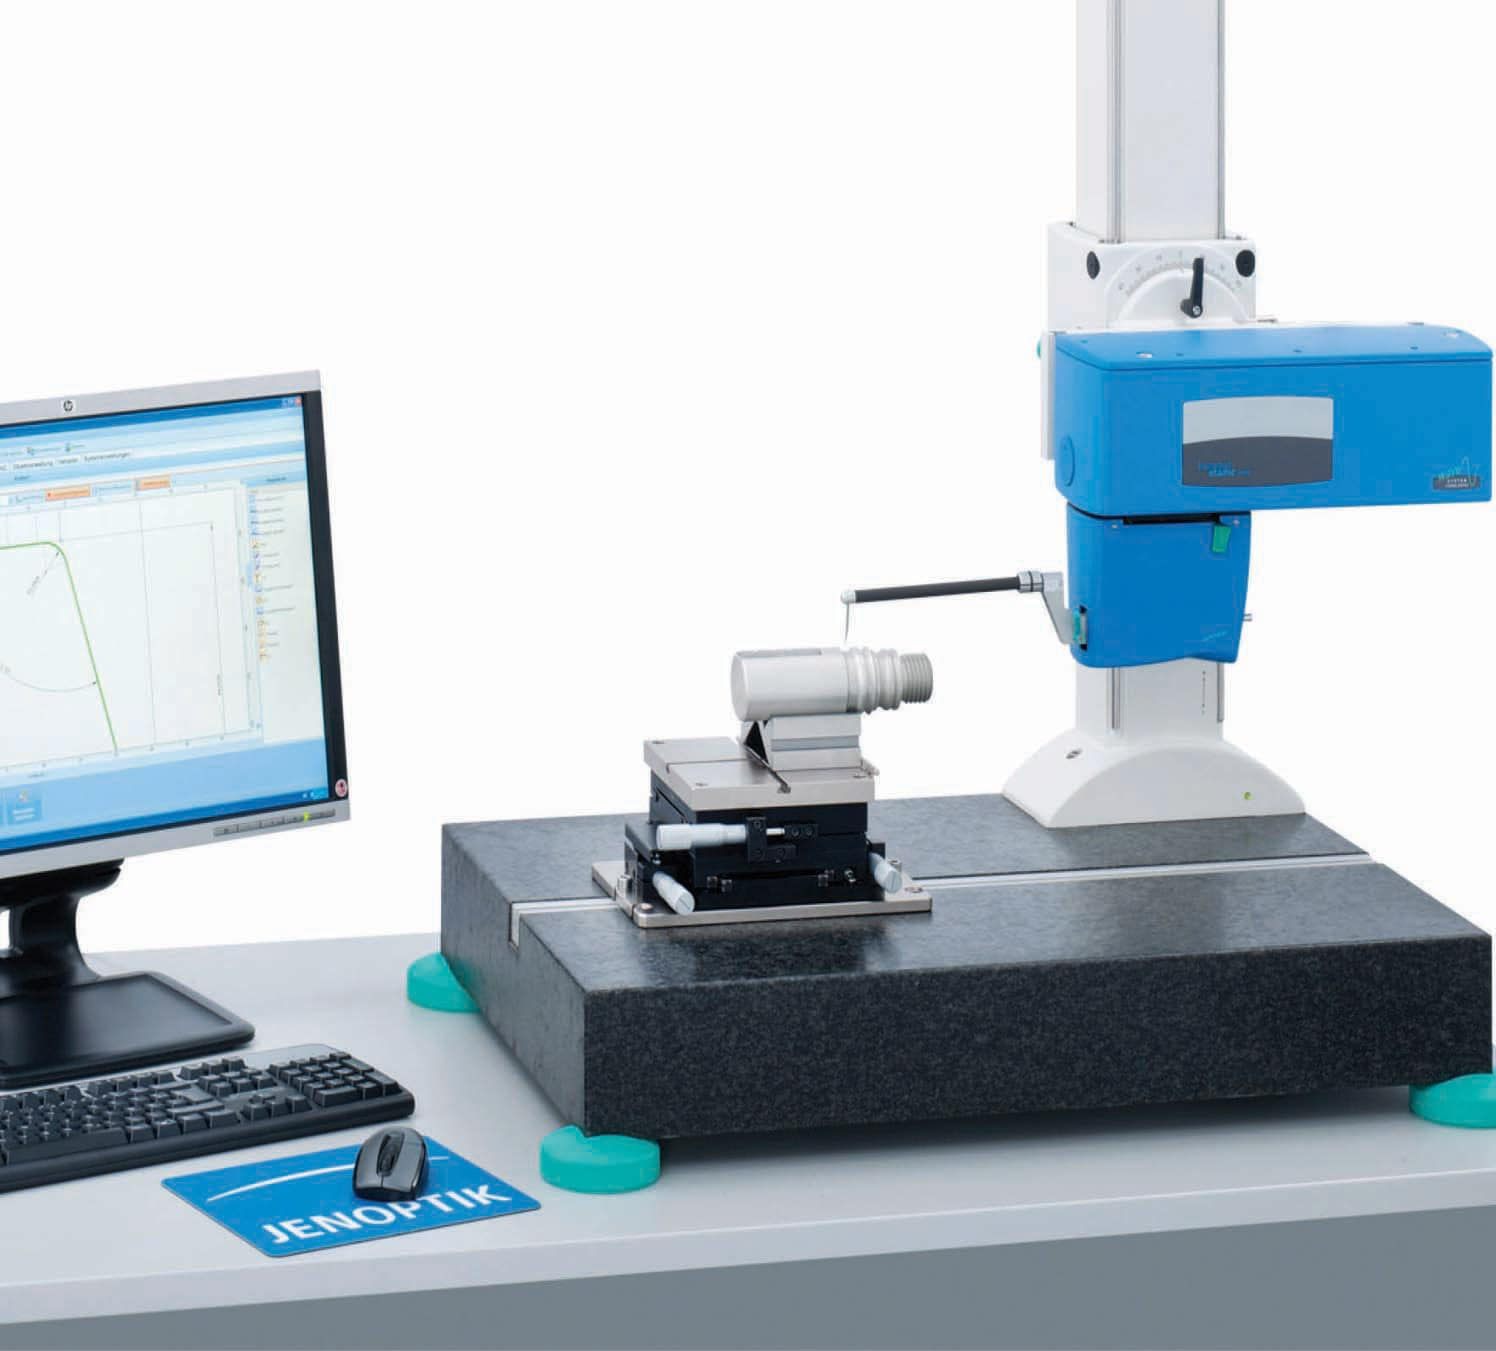 The Hommel-Etamic C8000 - Precise Measuring Systems for Contour Measurement